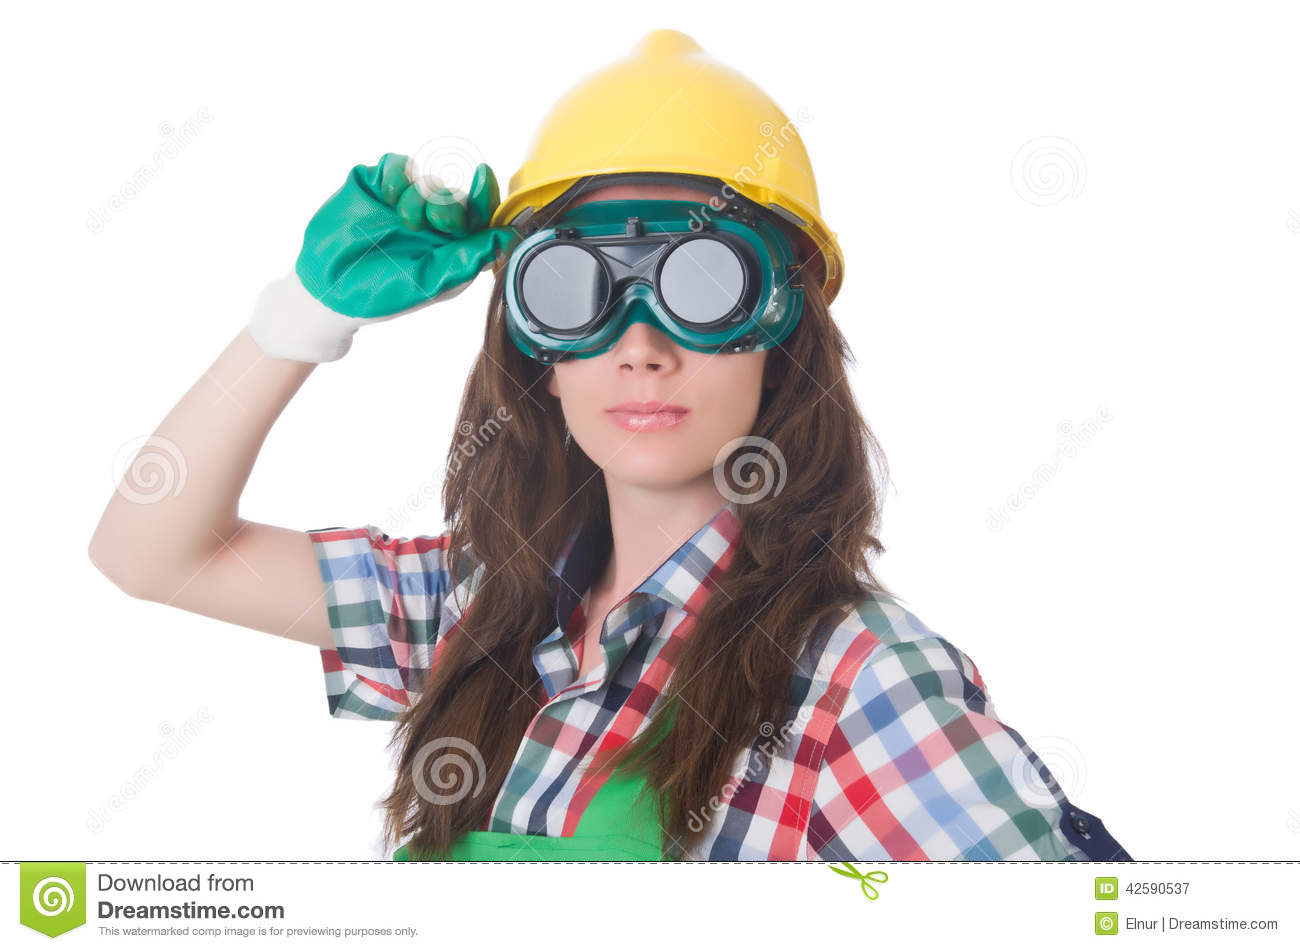 woman safety Find the perfect woman safety stock photo huge collection, amazing choice, 100+ million high quality, affordable rf and rm images no need to register, buy now.